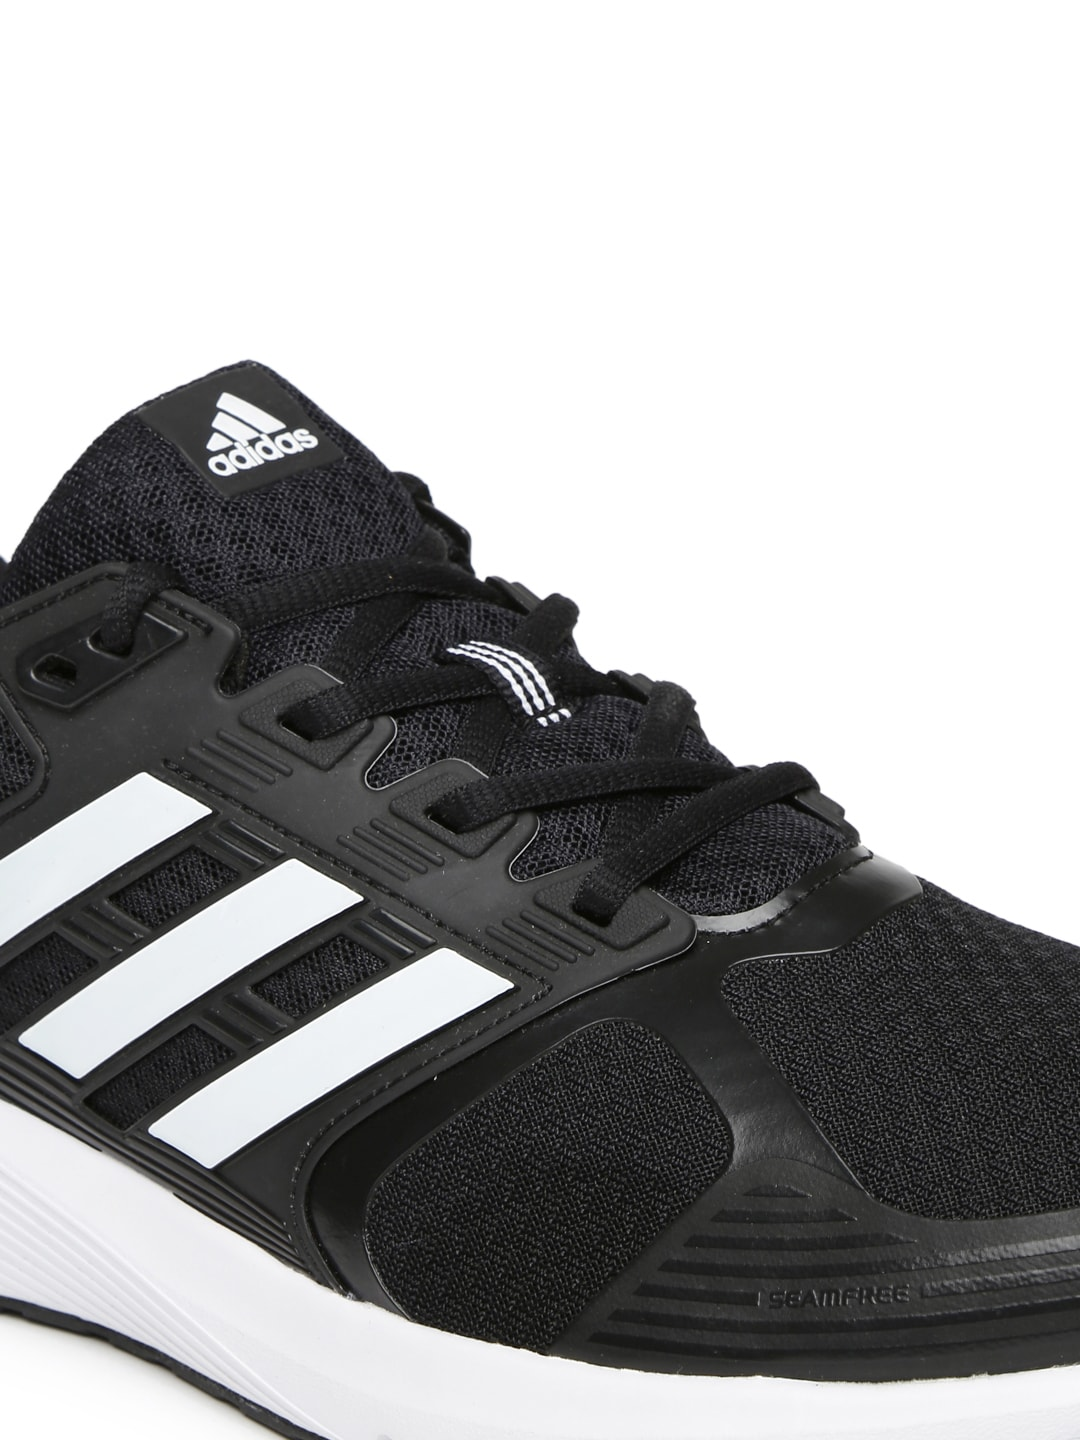 adidas shoes online